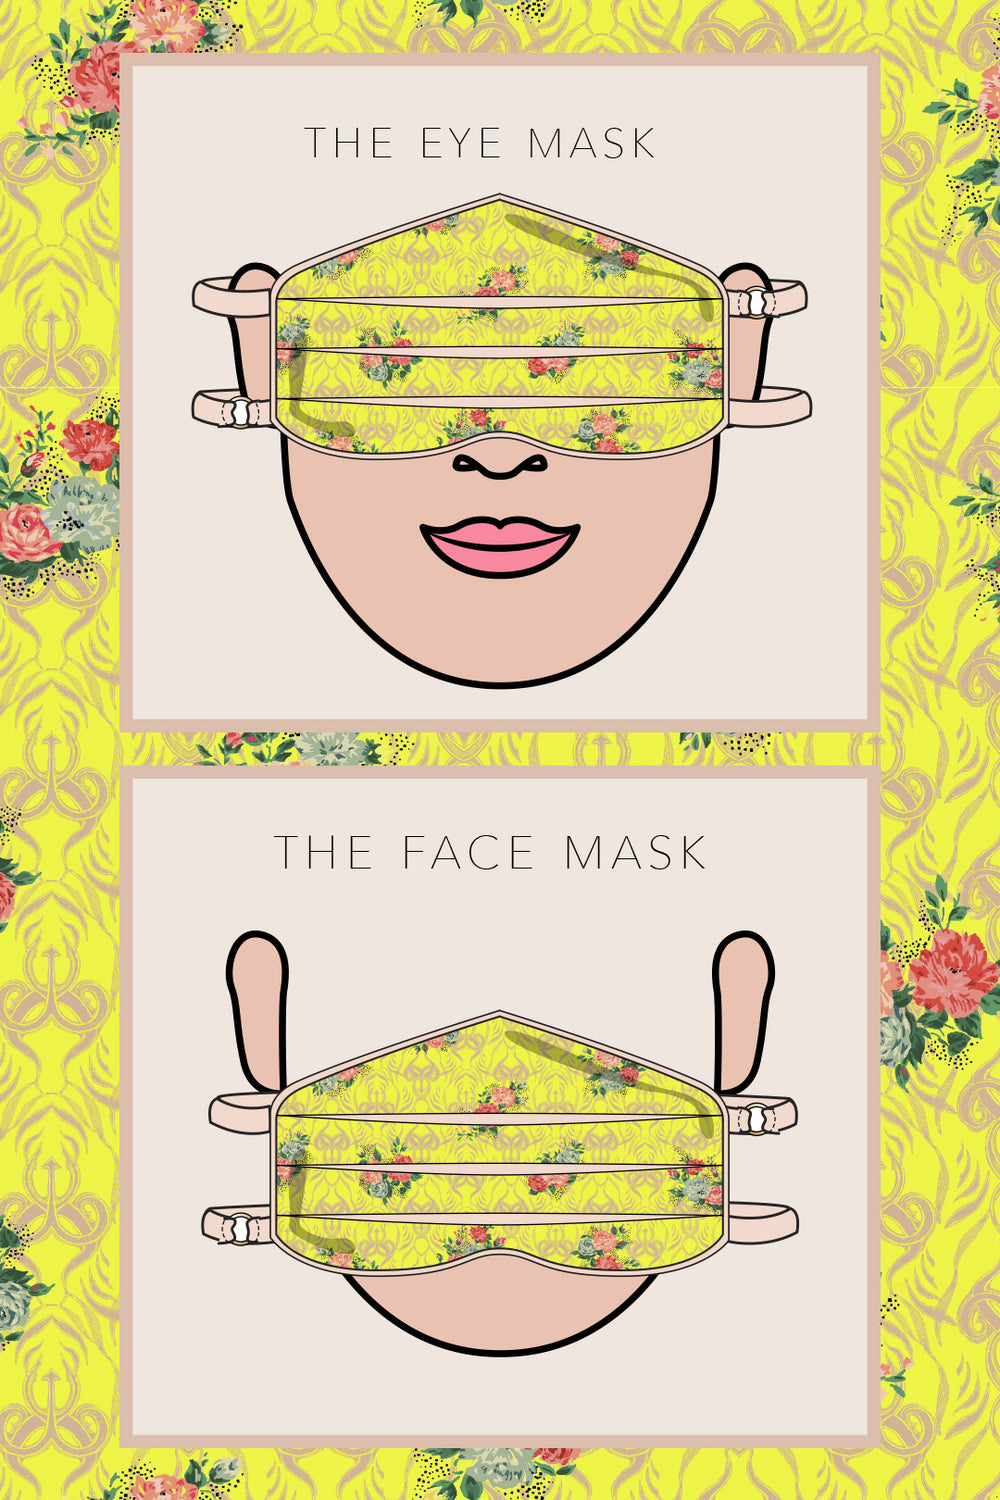 1 of HAH Kind HAHT Mask | BB Eggshell